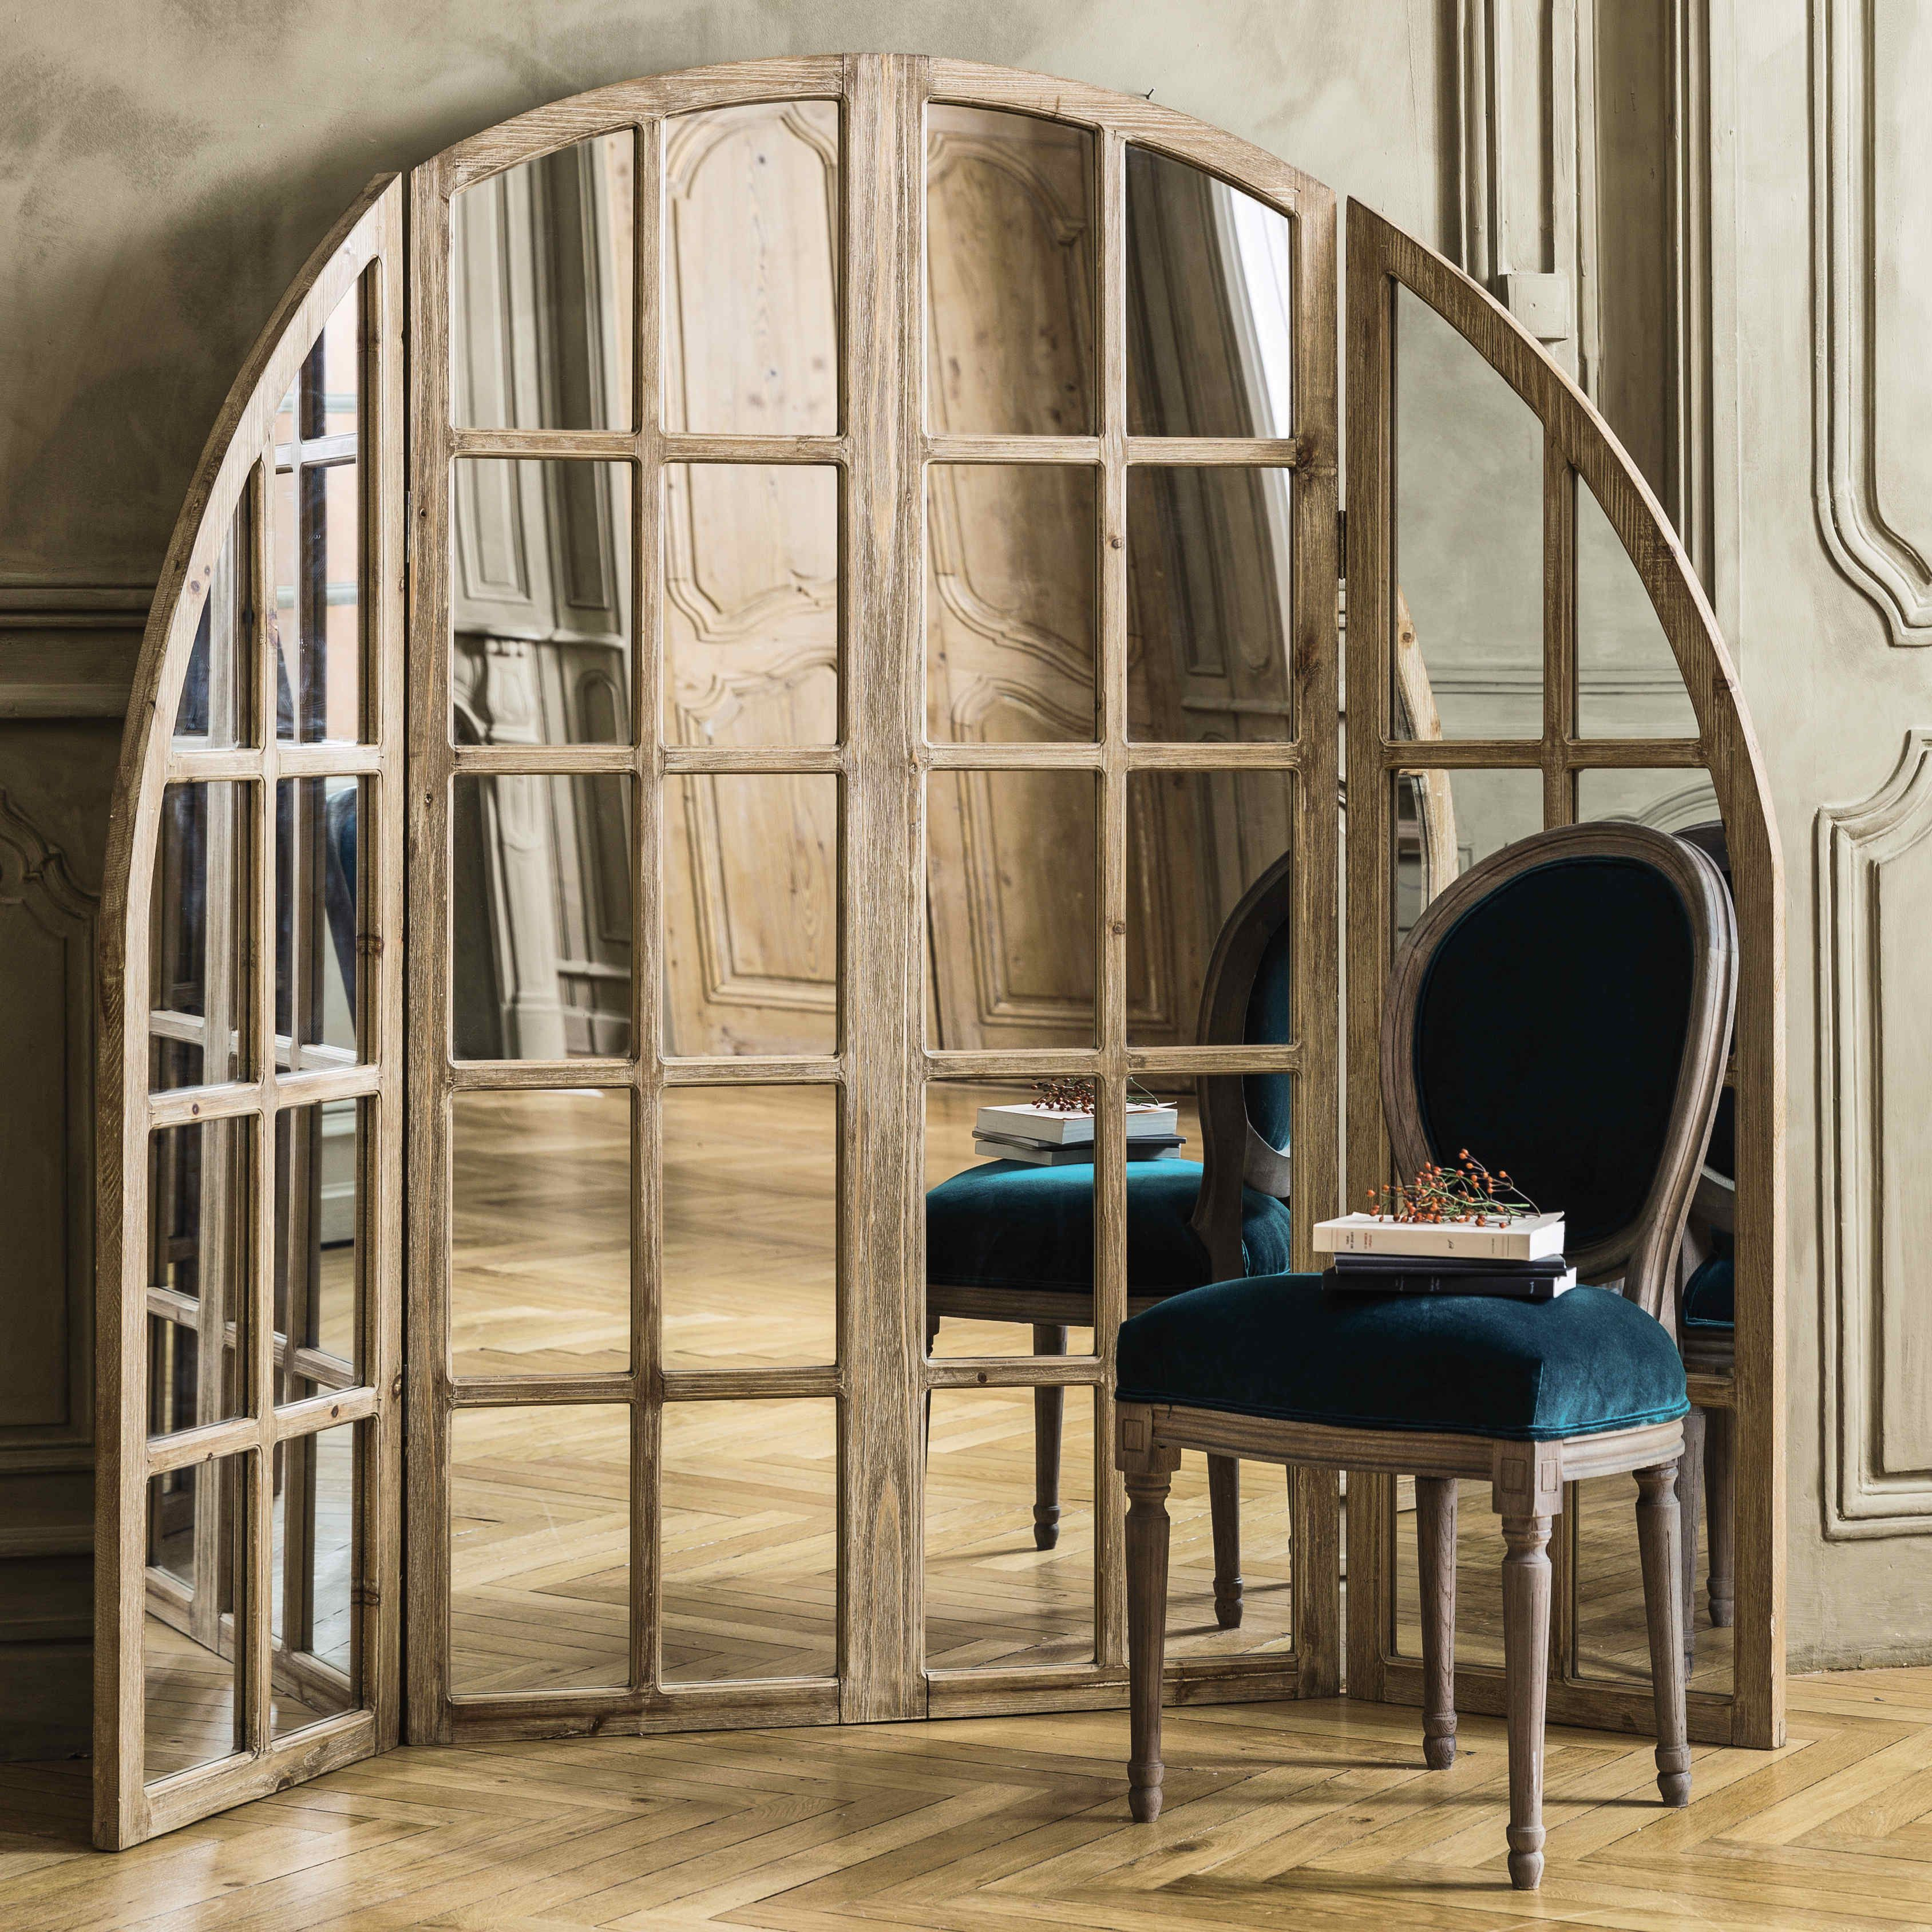 miroir en bois l 200 cm marceau maisons du monde int rieur et d corations gothique pinterest. Black Bedroom Furniture Sets. Home Design Ideas